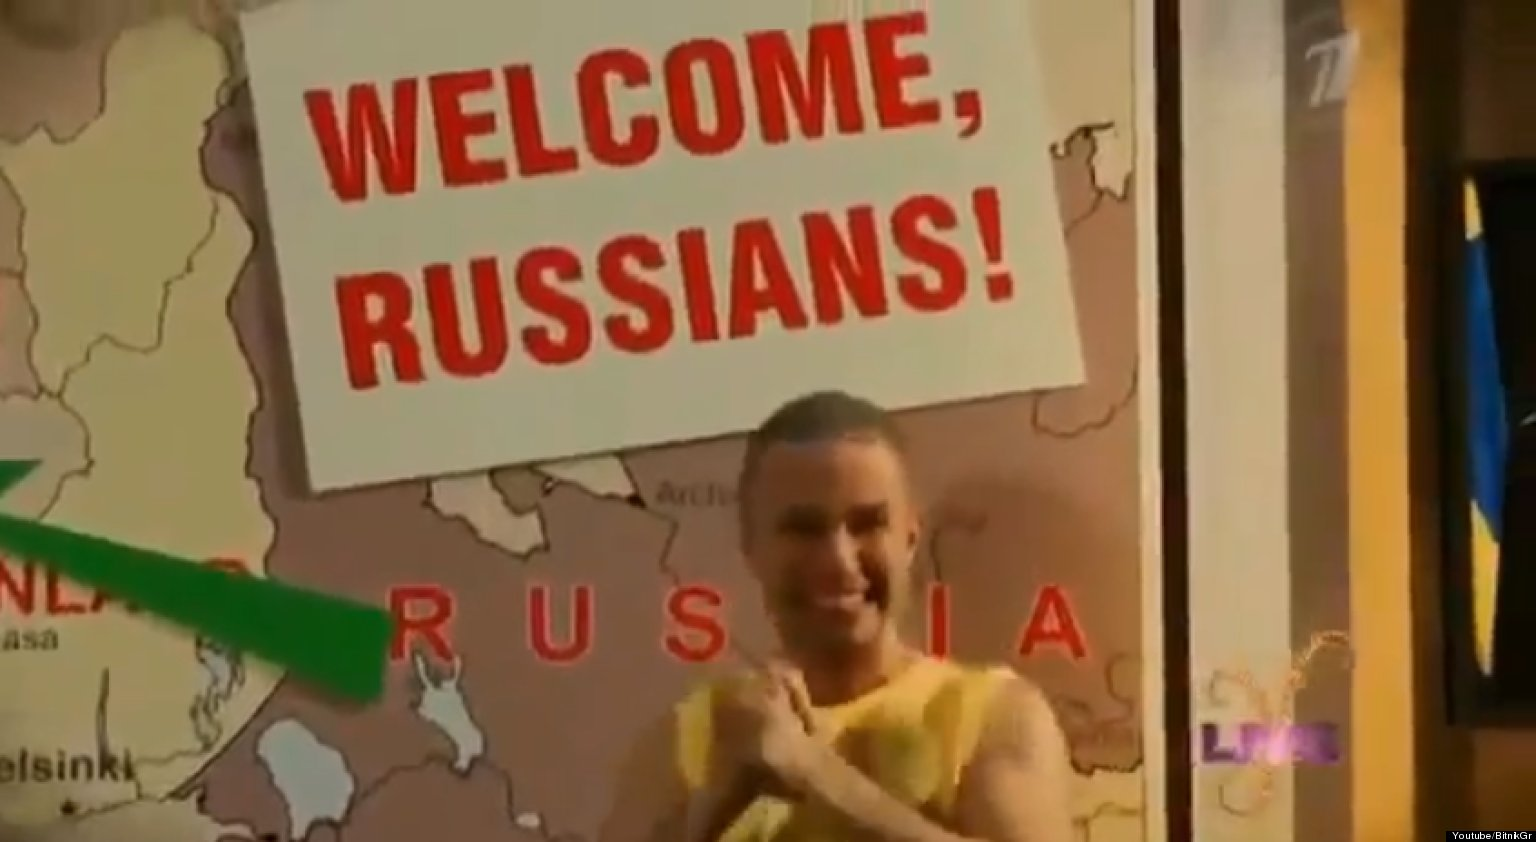 WATCH: Russia Mocks Sweden In Incredible ABBA Parody